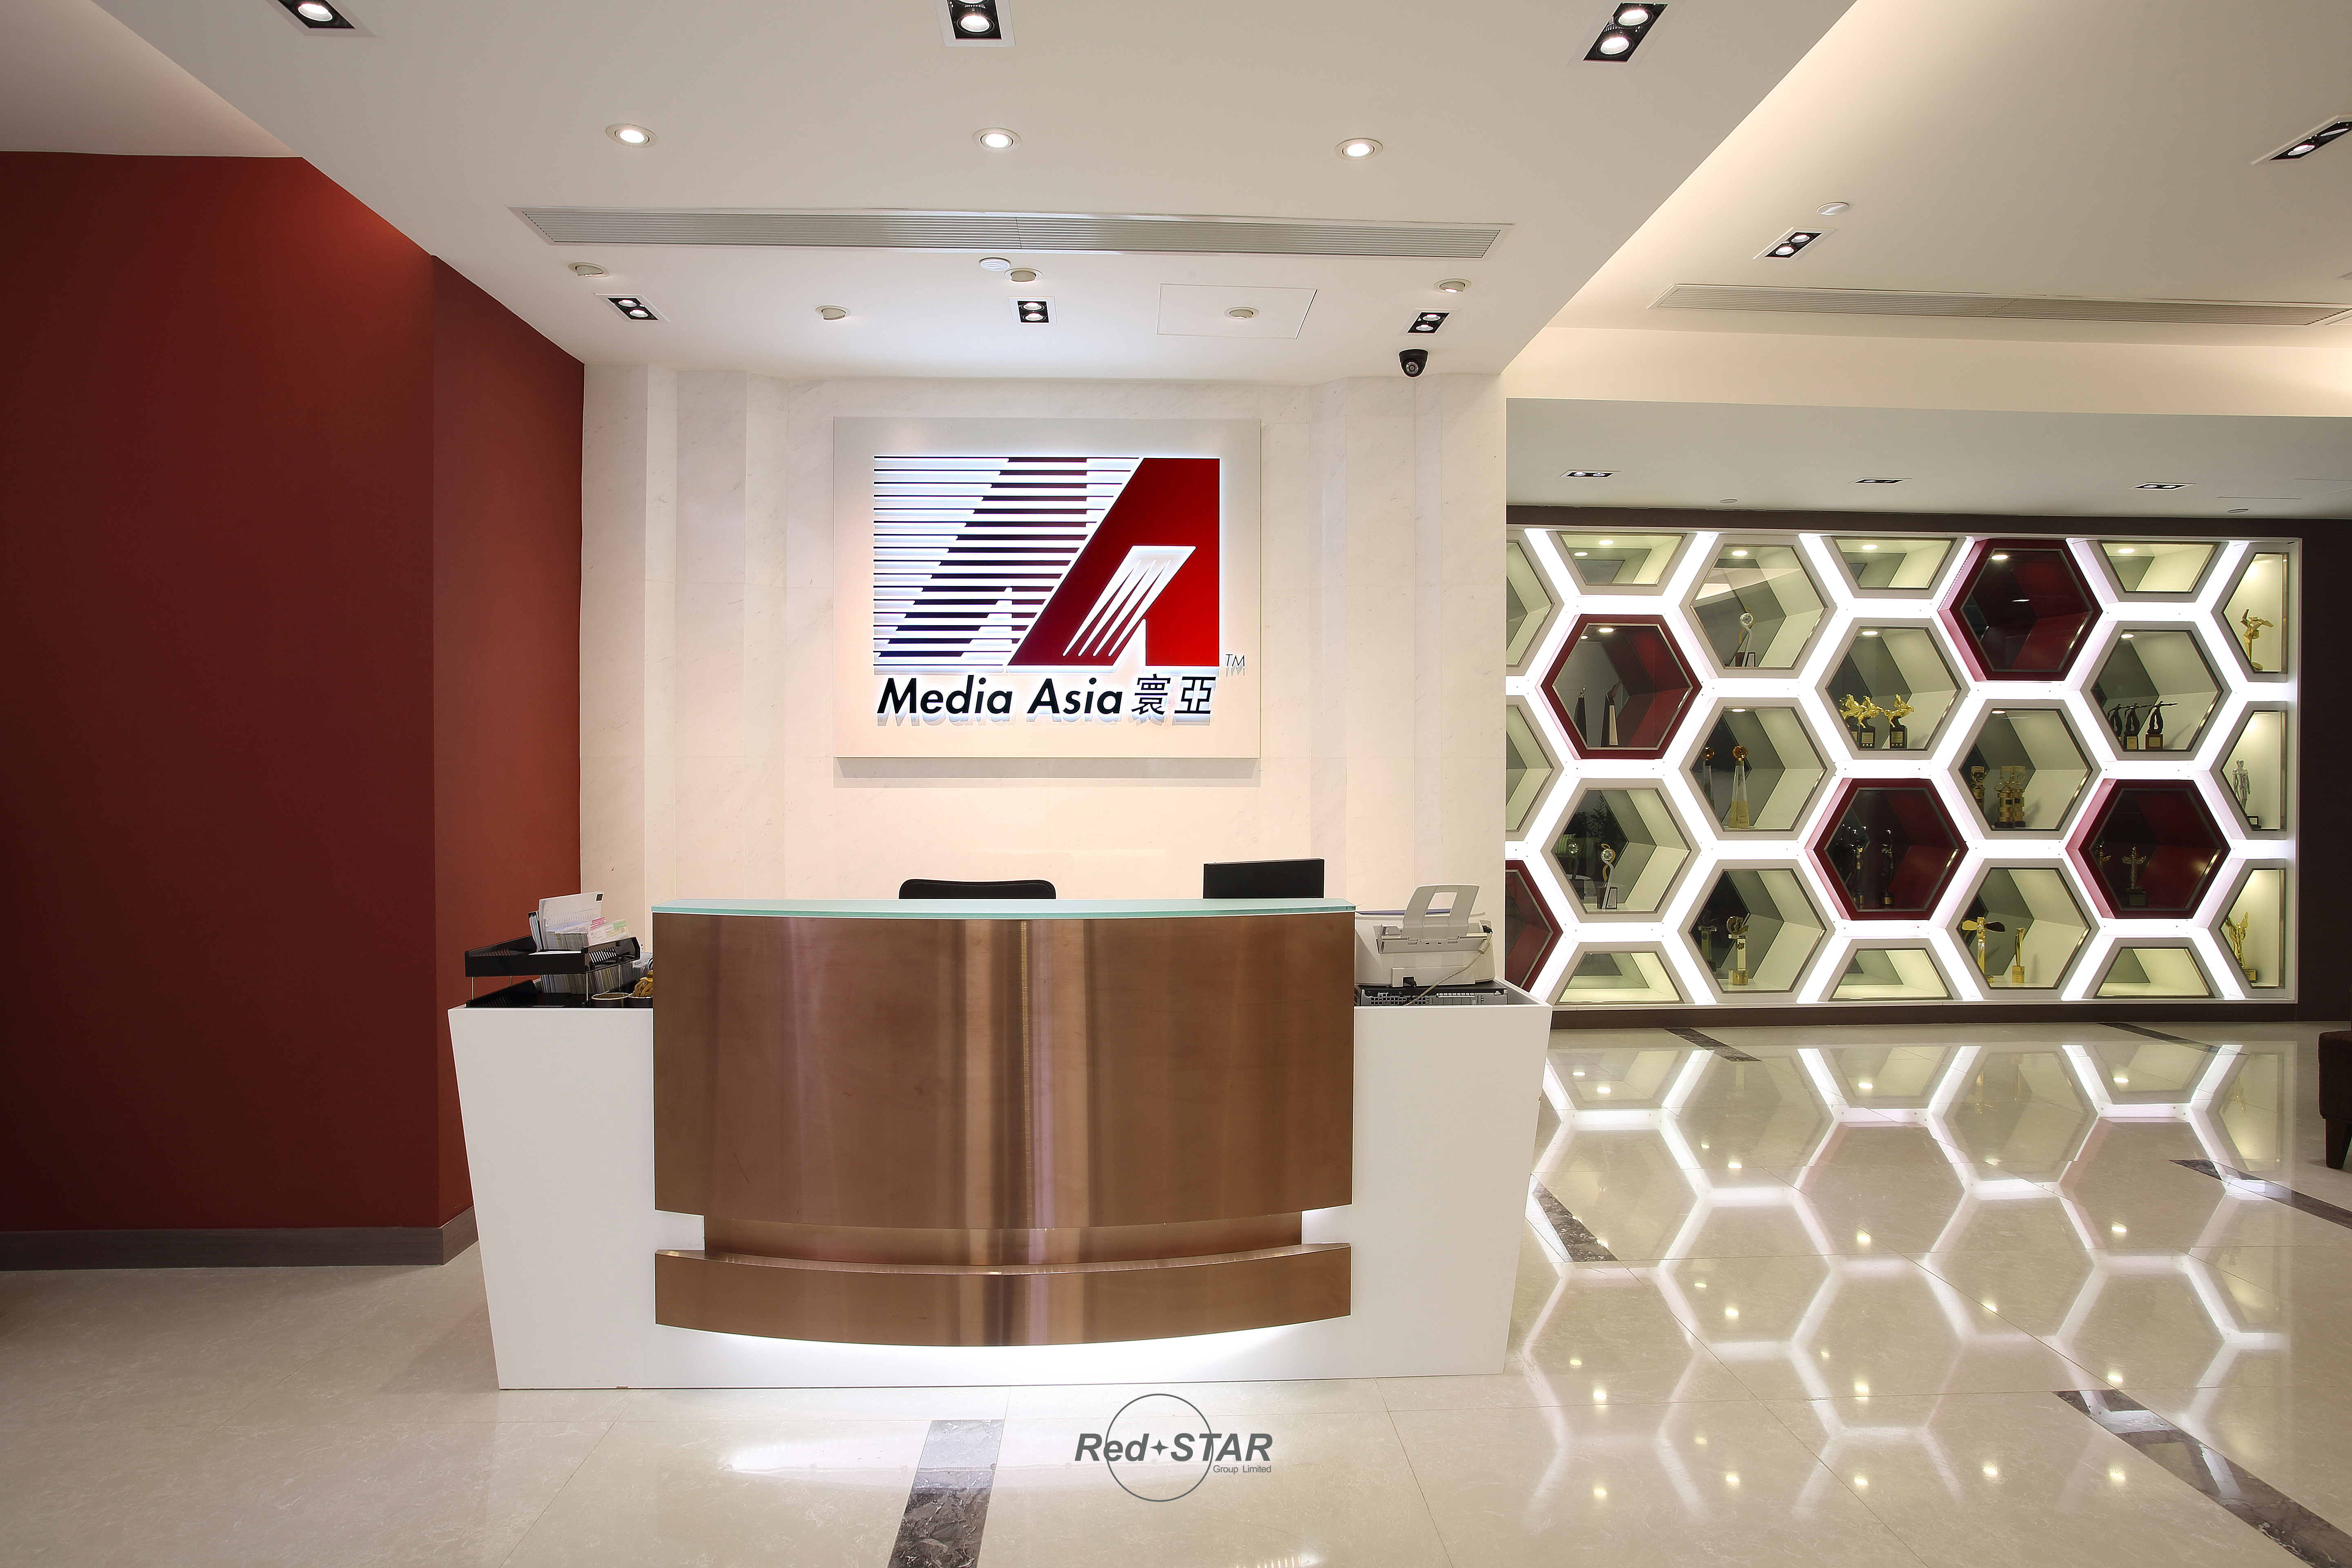 Media Asia Group Holdings Limited